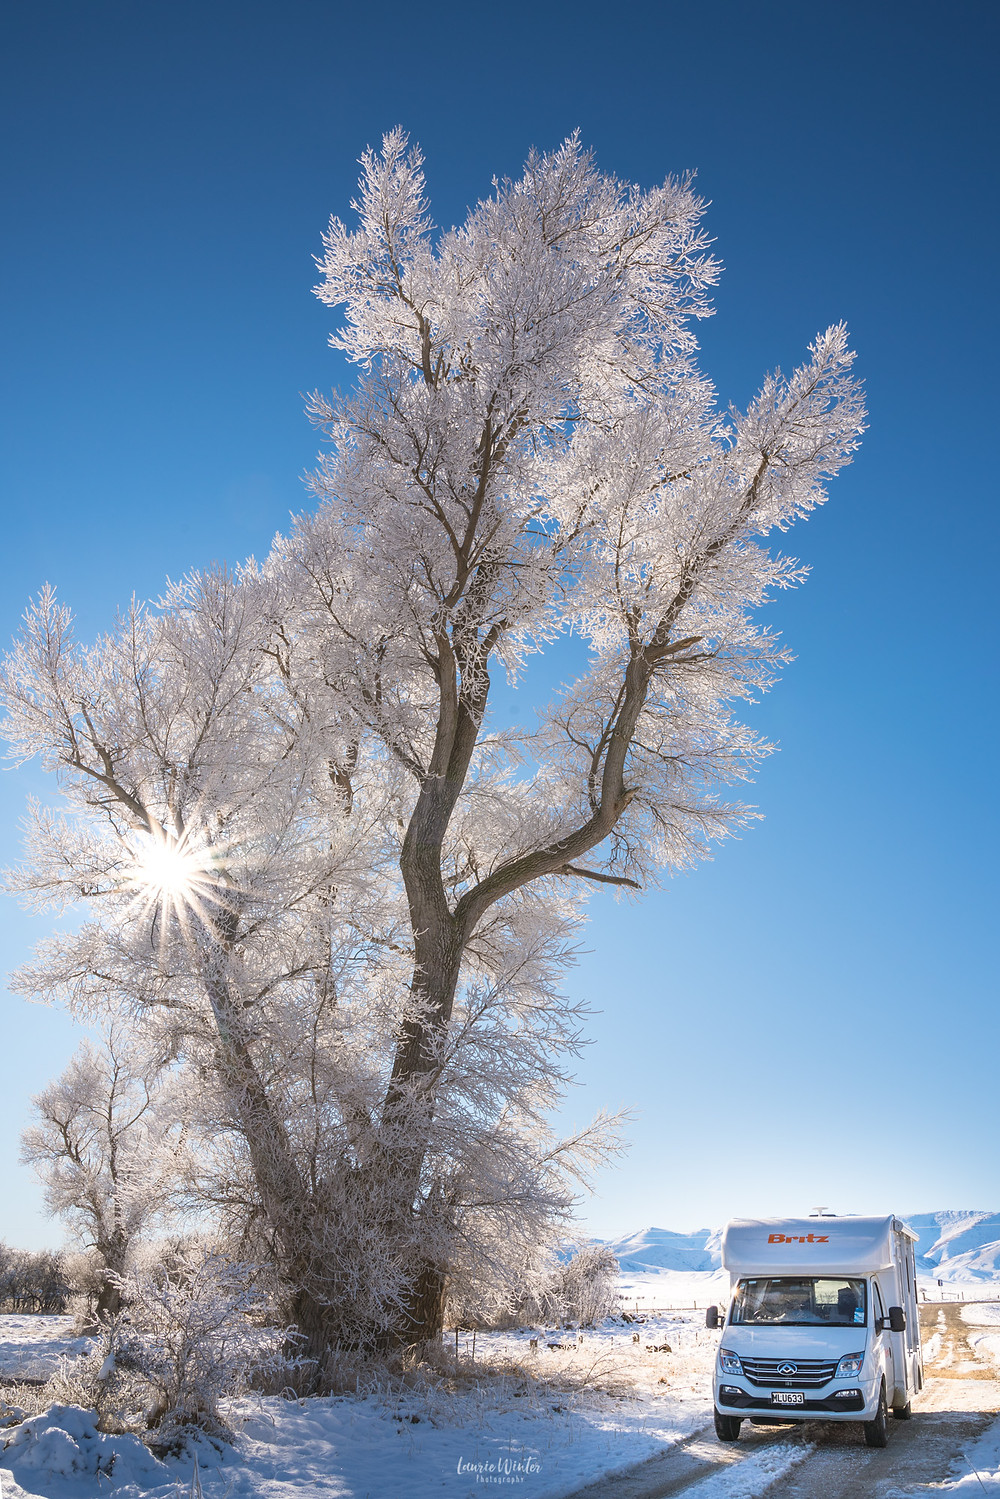 Ice covers the trees during a hoar frost near Ranfurly in Otago